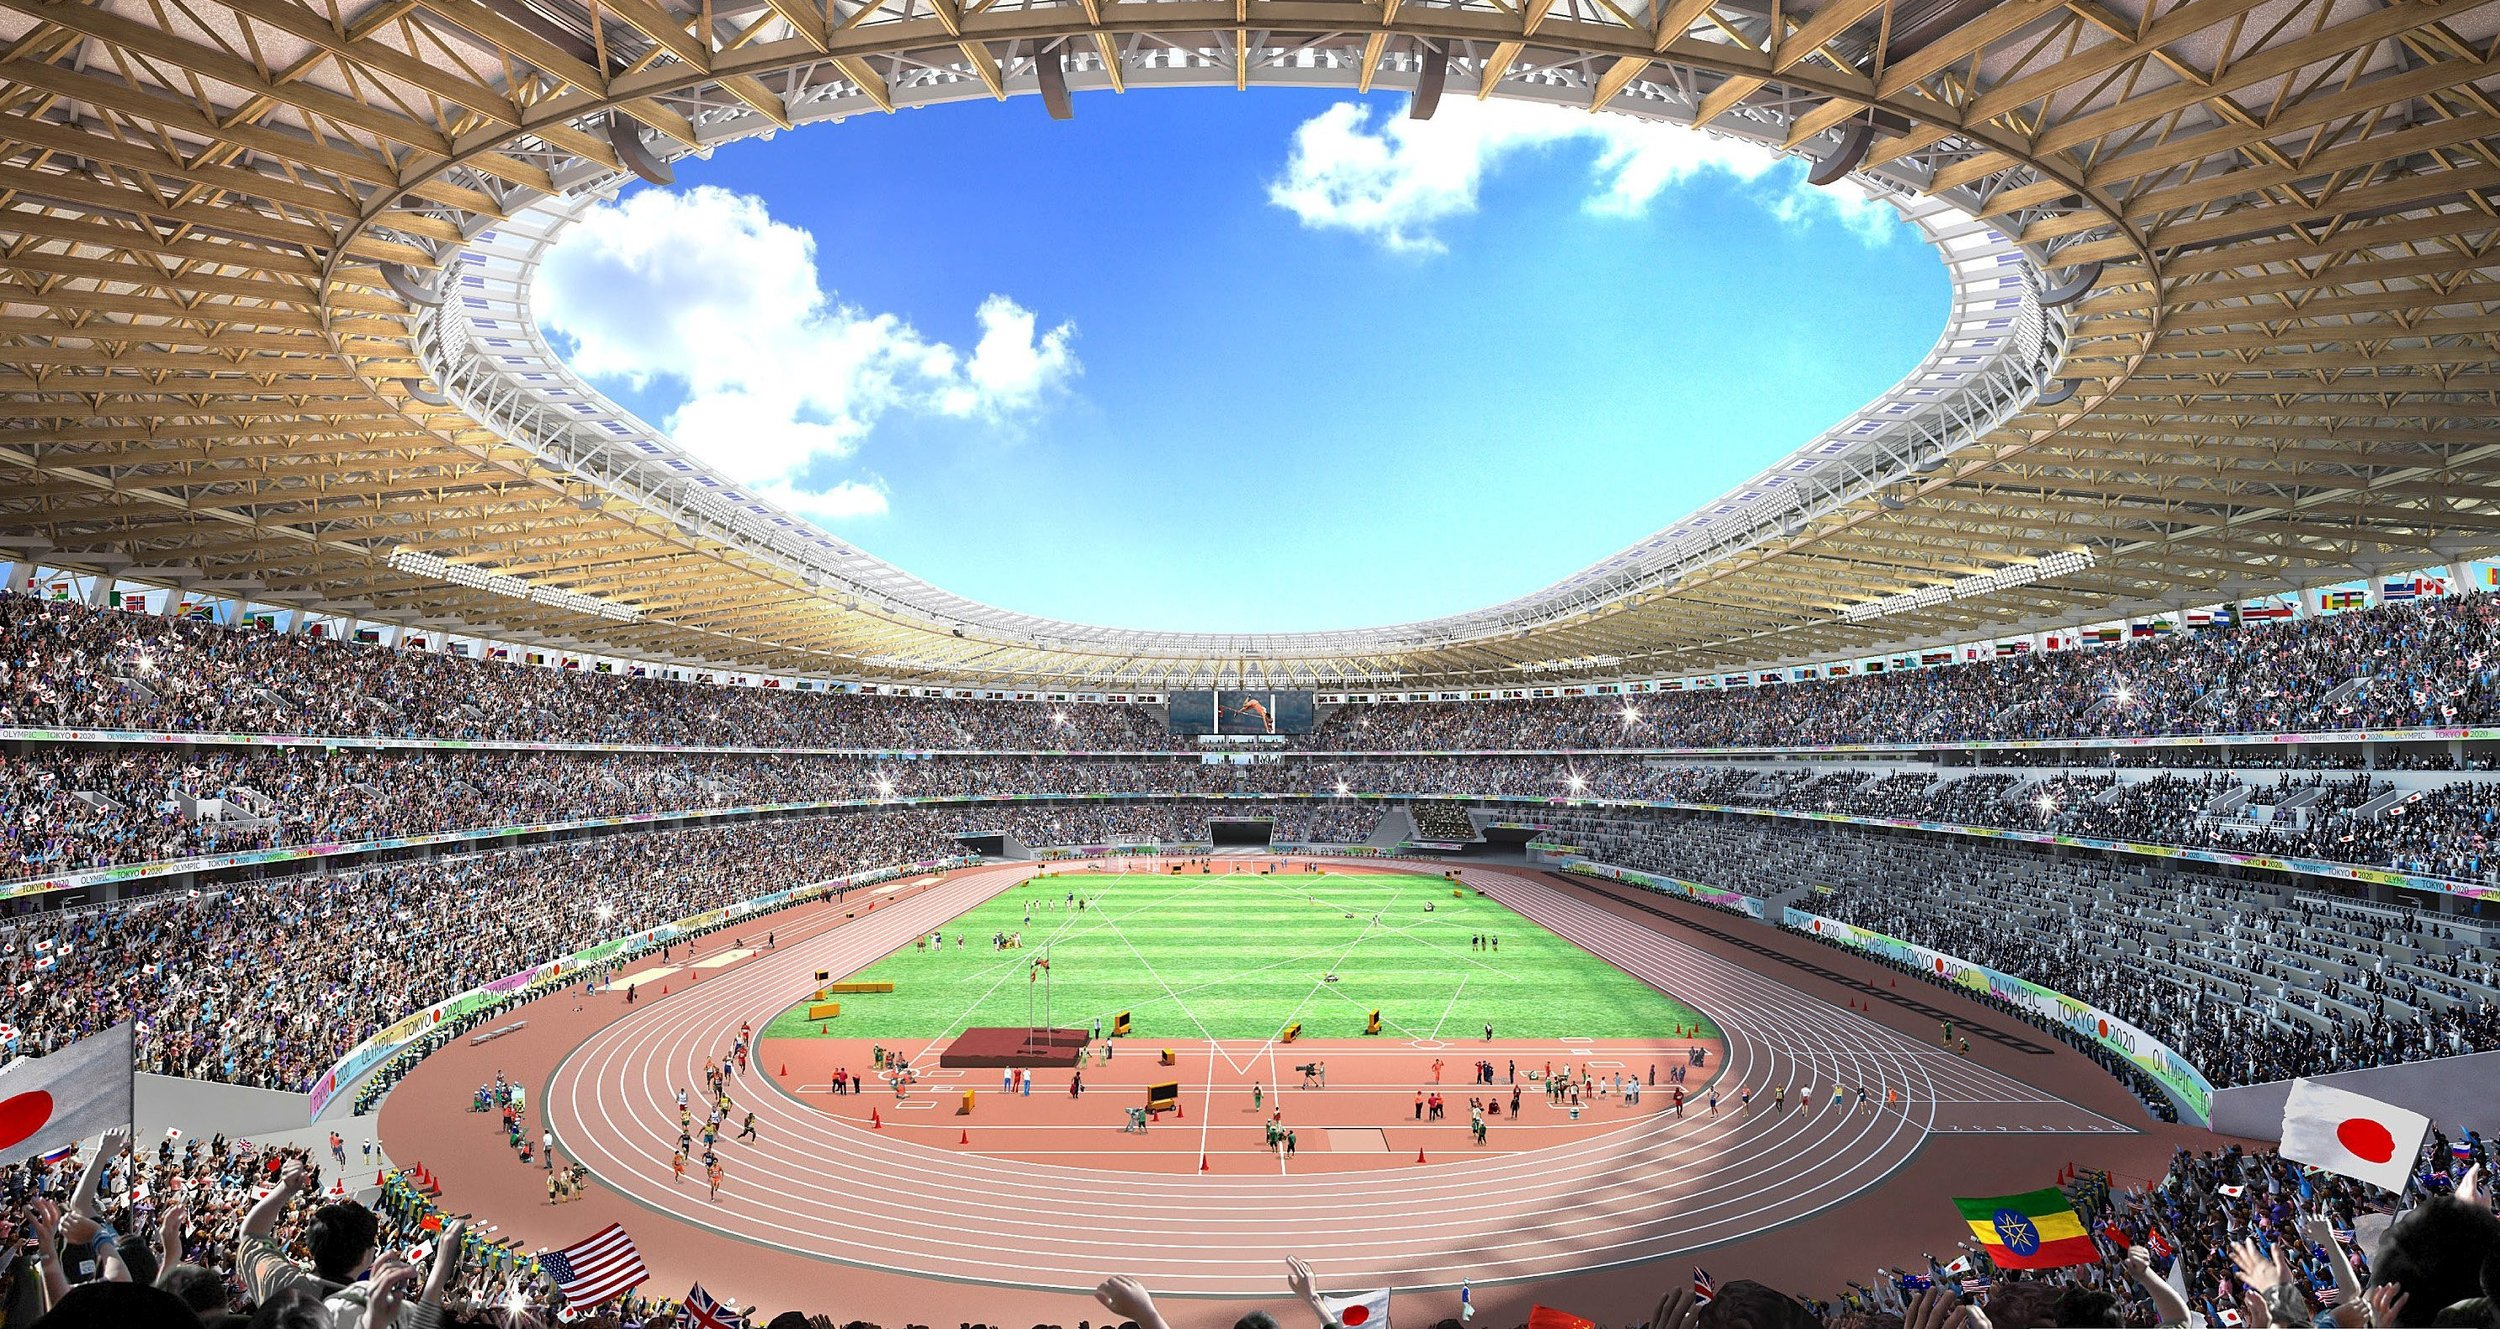 出典: https://www.nbcnews.com/news/world/japan-selects-new-stadium-design-2020-tokyo-olympics-n484256